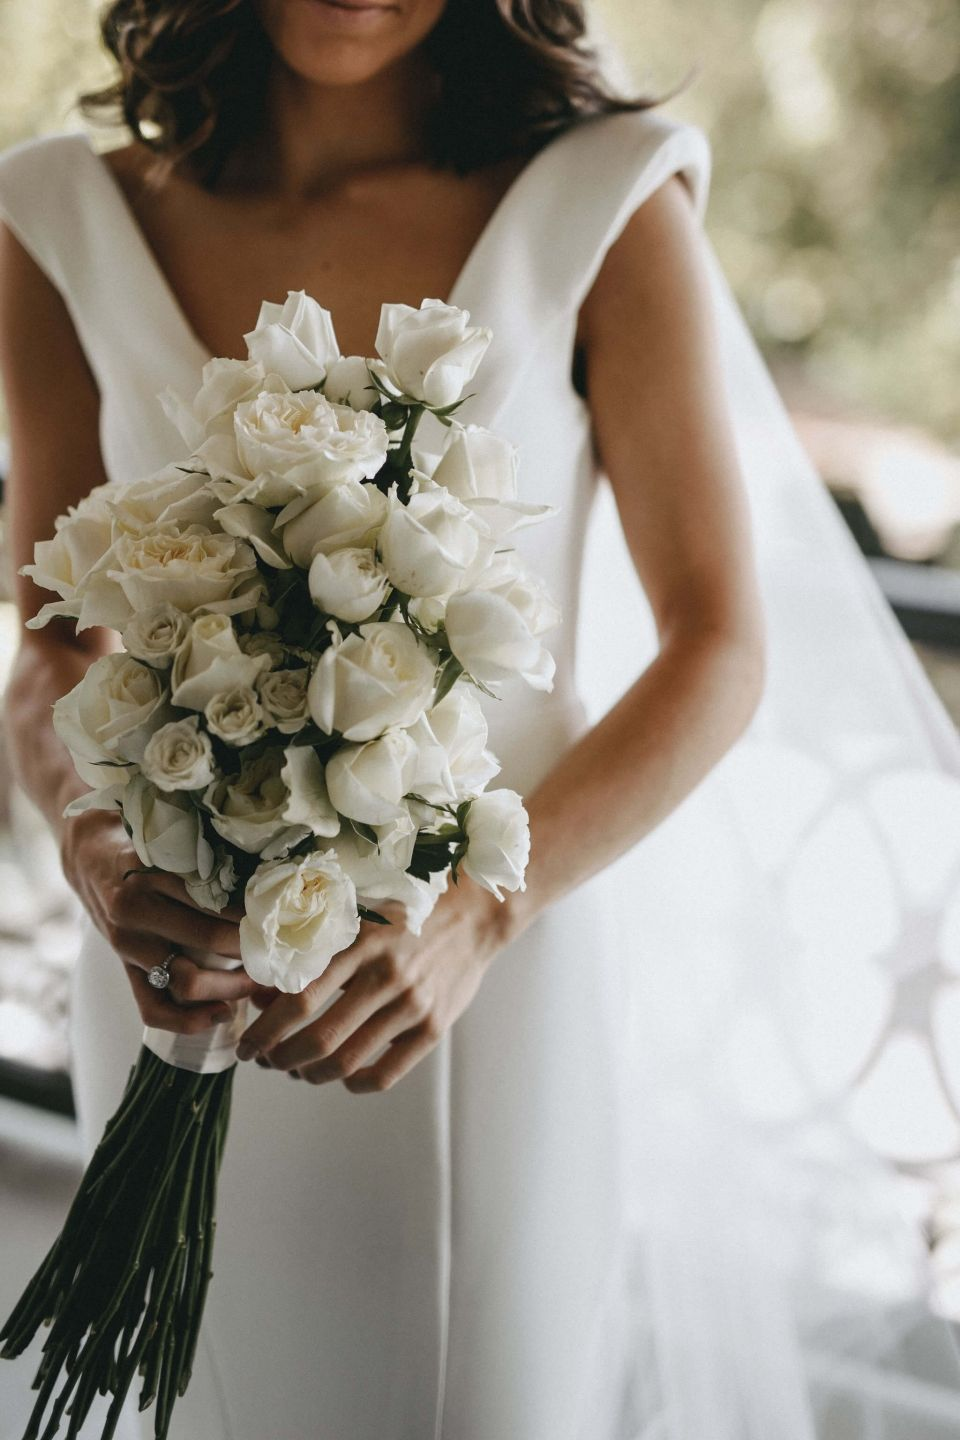 Simple But Classic Long Stem White Rose Bouquet With Satin Ribbon